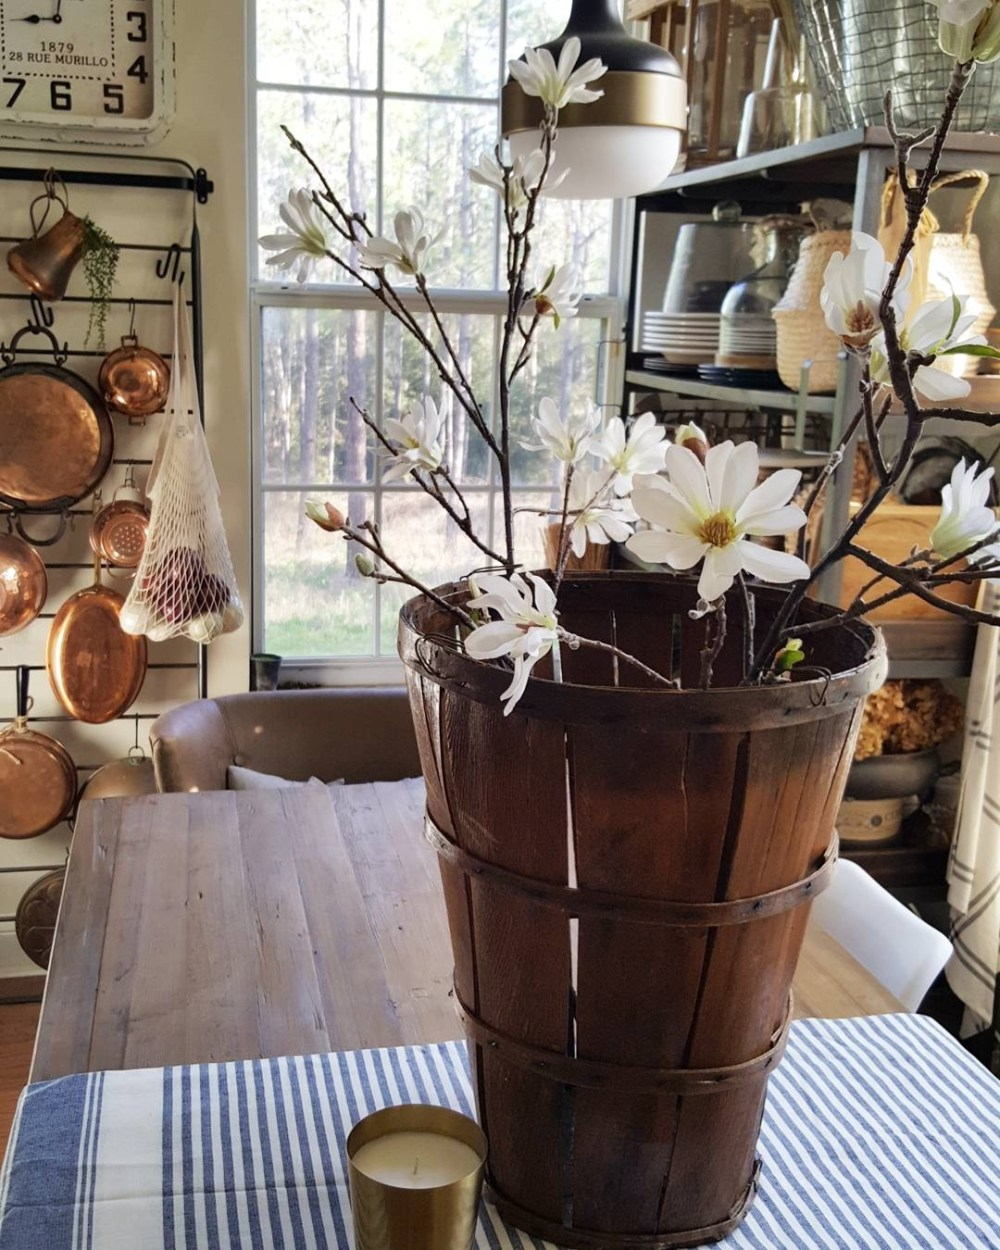 Country Farmhouse Kitchen White Tulips Flowers Wood Spoons Bread Boards Concrete Table Metrie Moulding Molding Baskets Country Living Decor Design